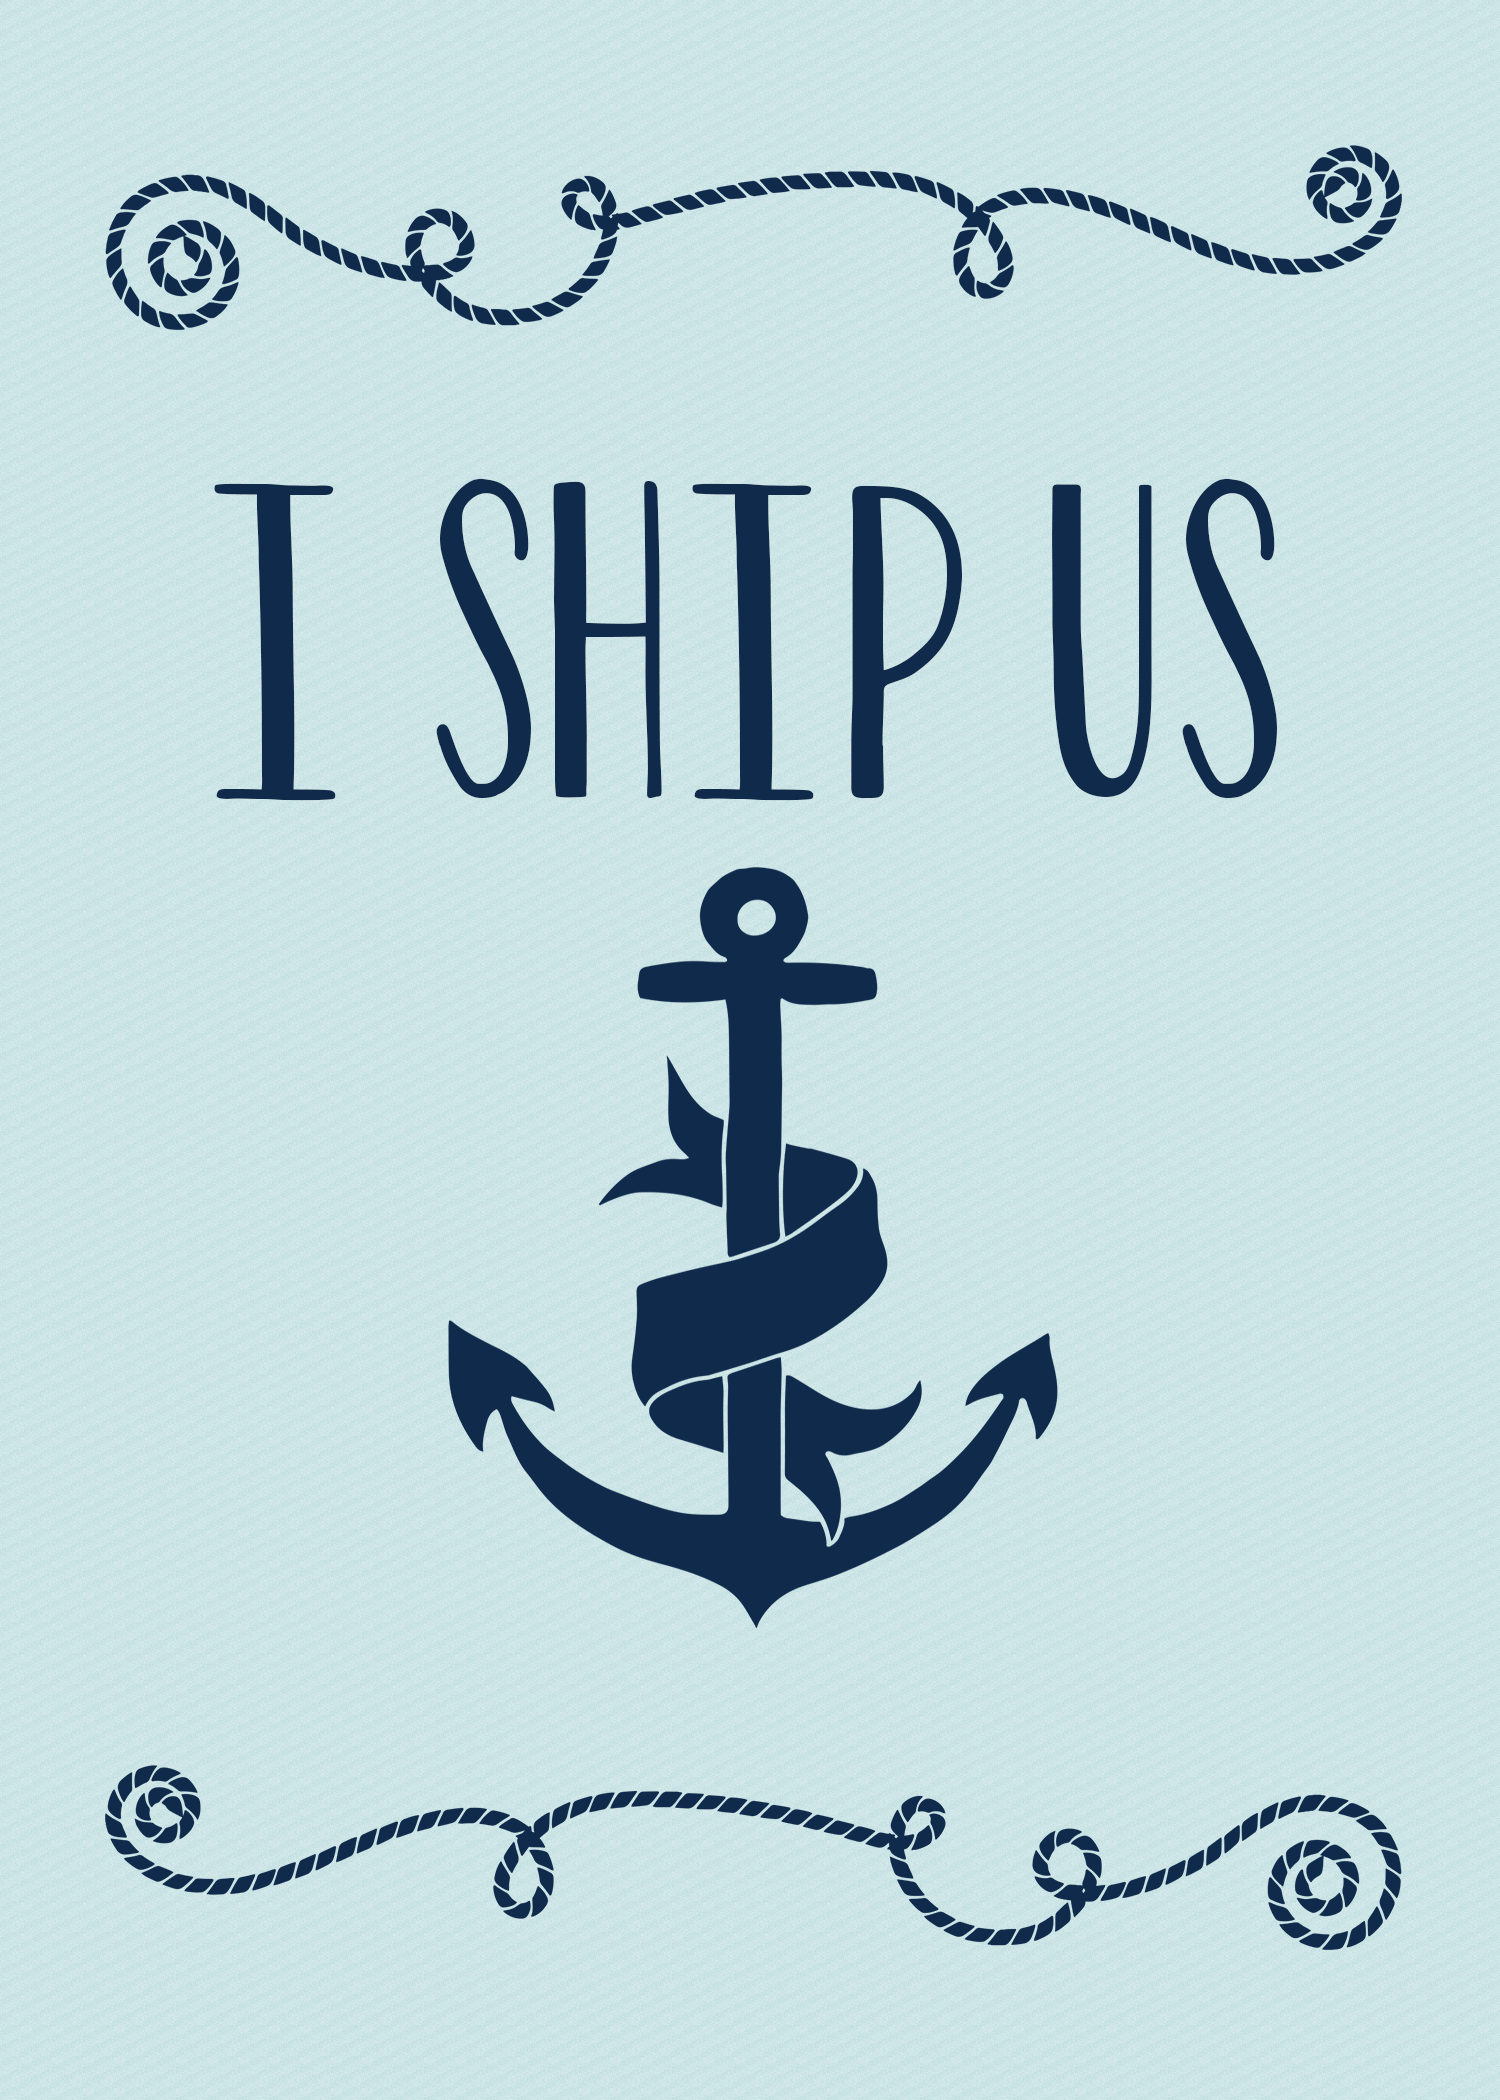 i ship us - valentines day card